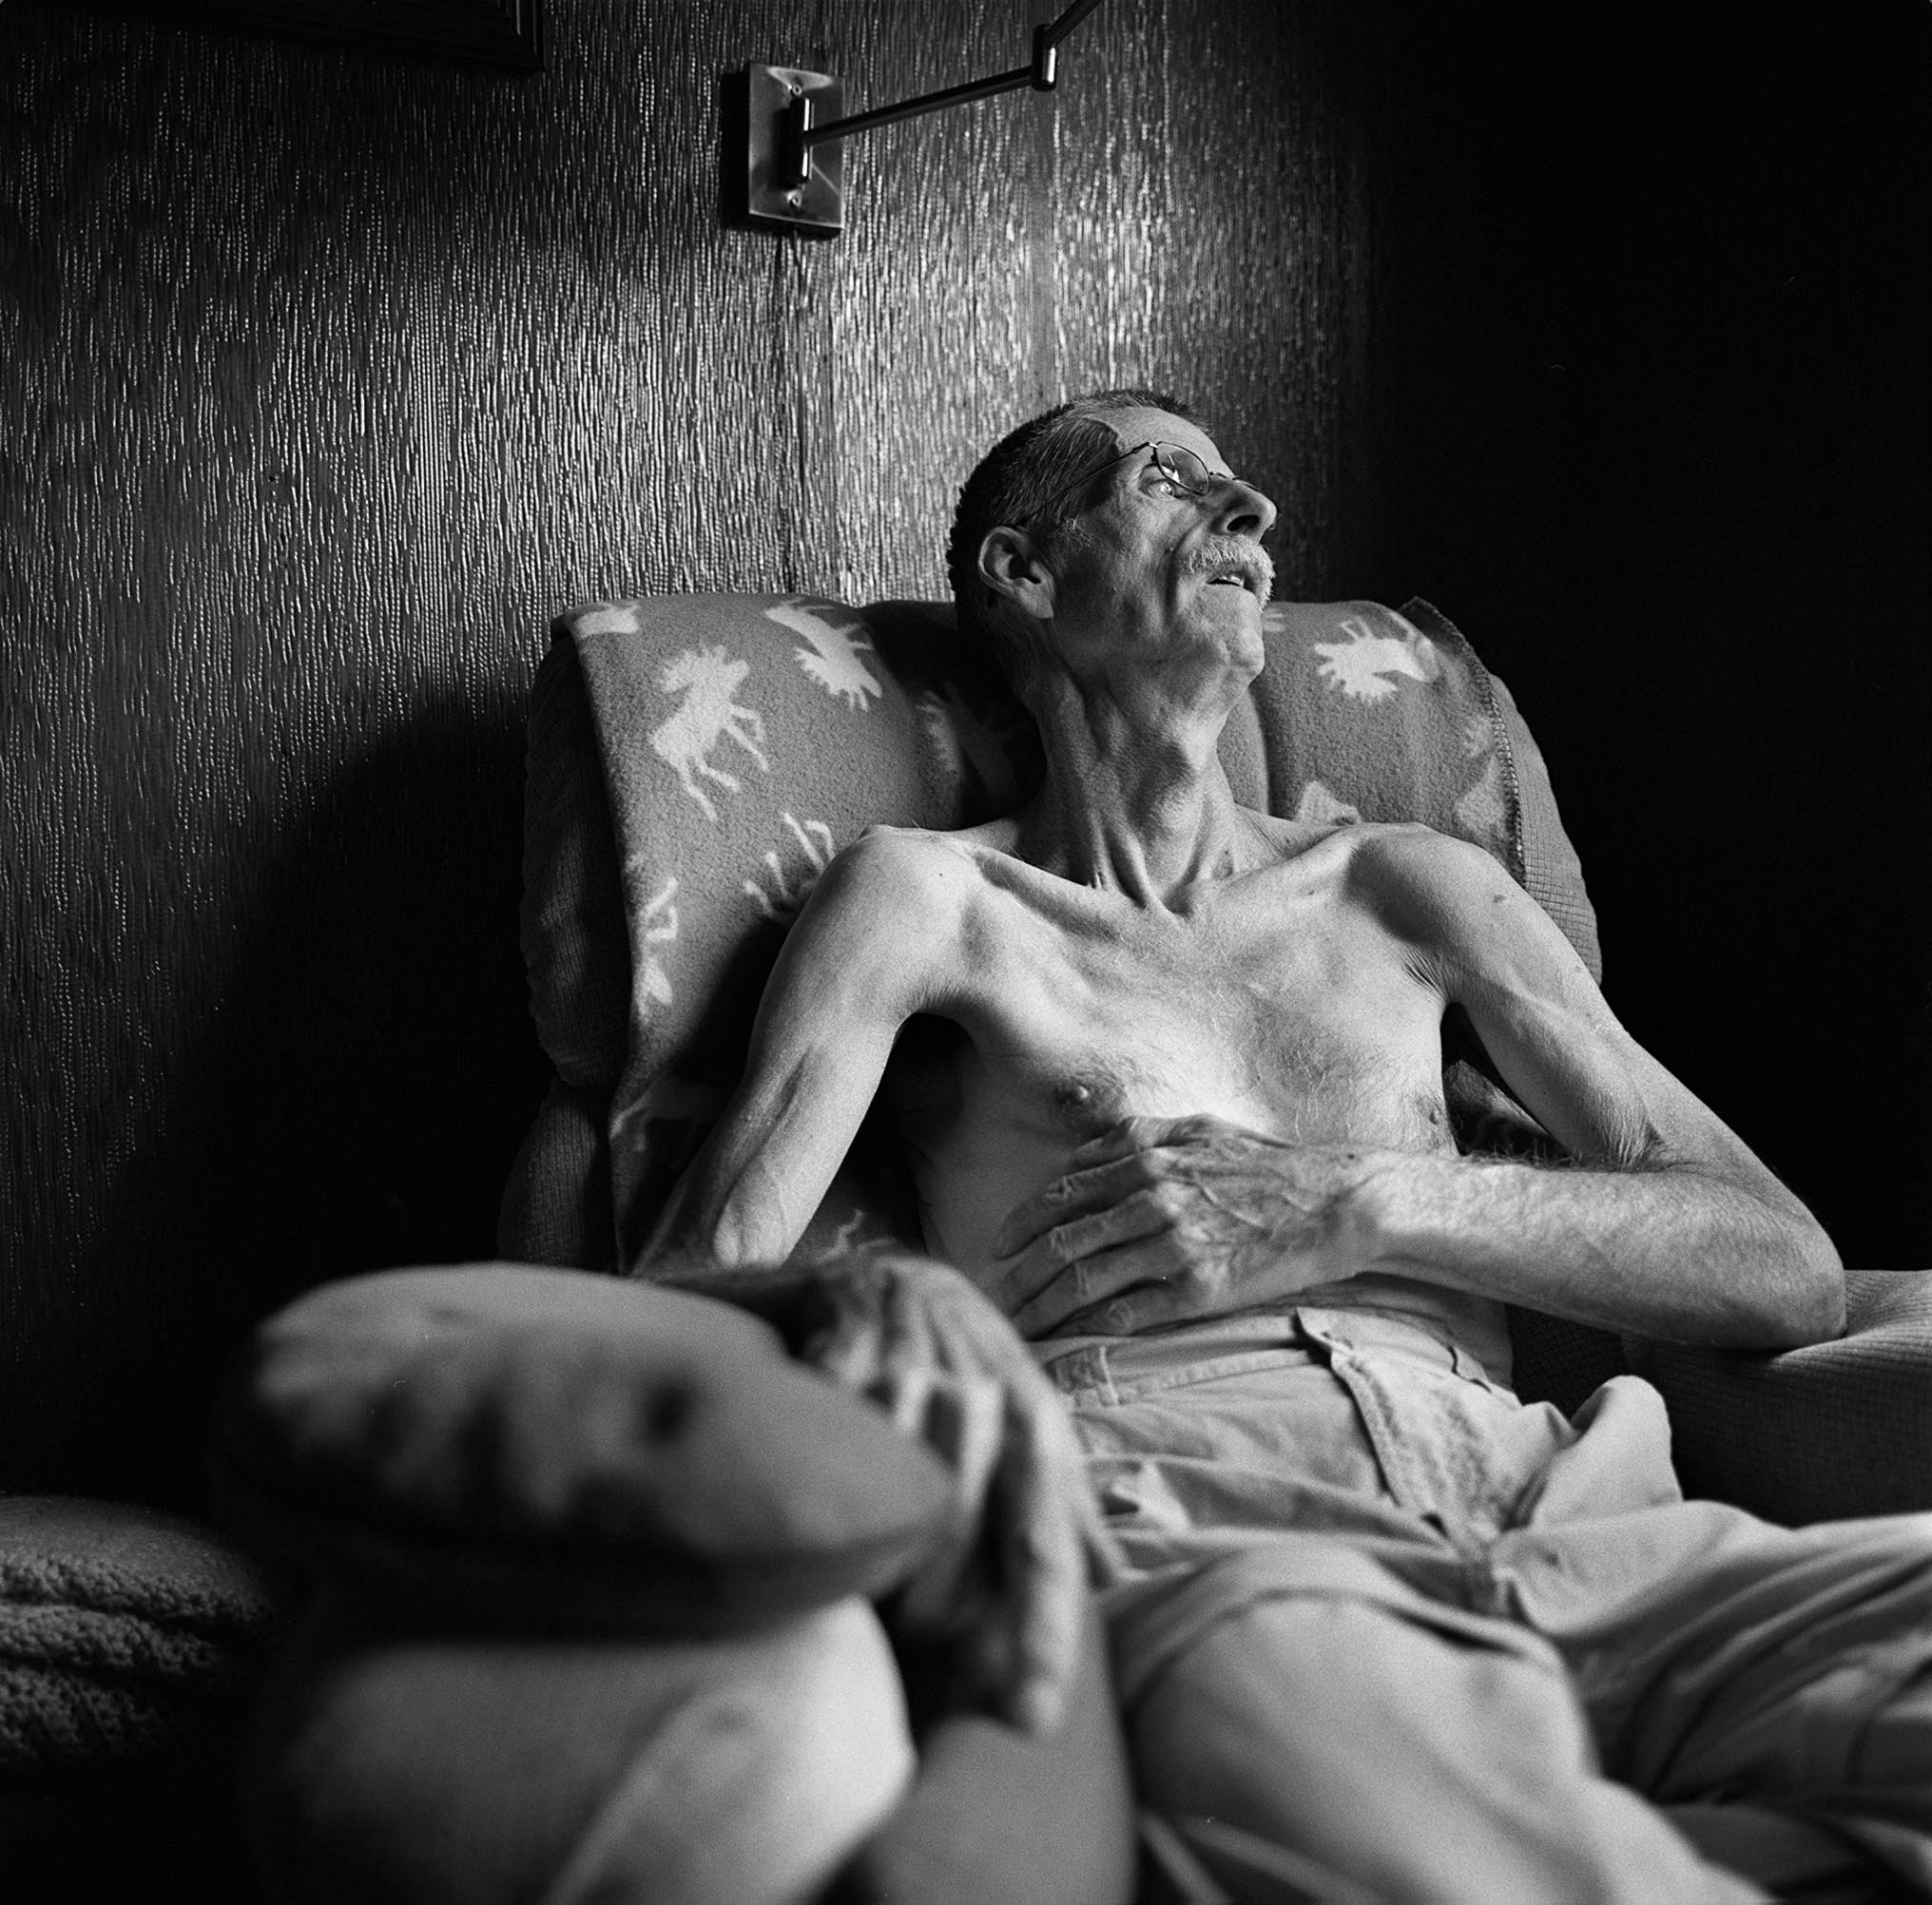 58-year-old Blayne Kinart a former chemical worker and mesothelioma victim.  ©Louie Palu/ZUMAPRESS.com